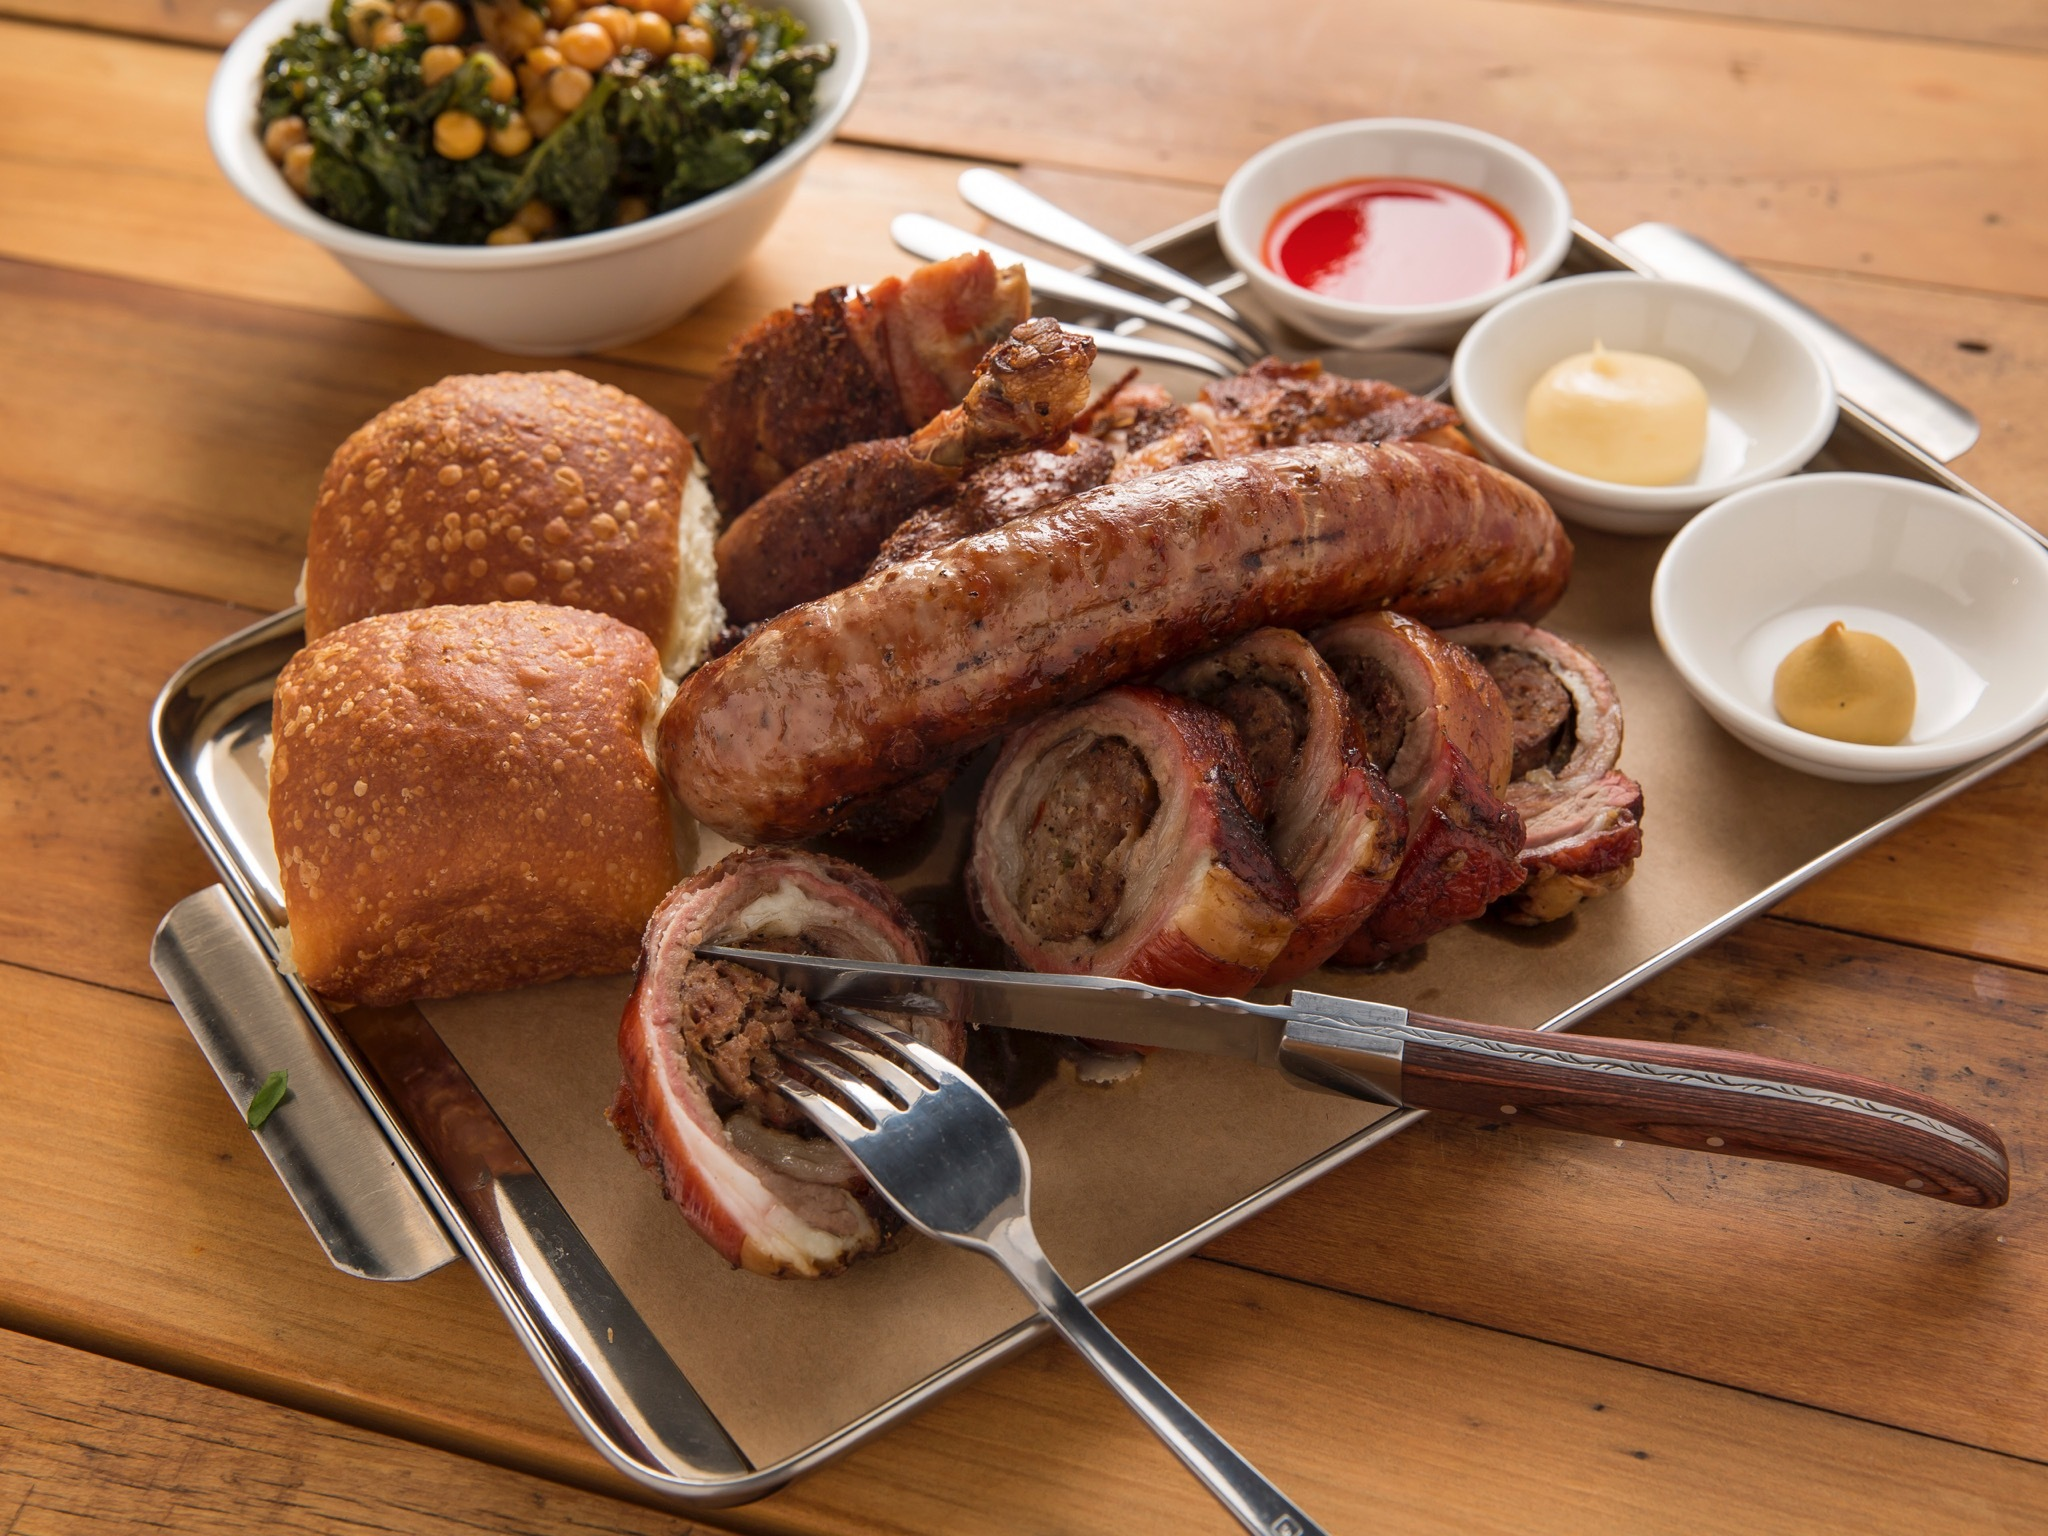 A tray of assorted smoked meats on a metal tray with dipping sau